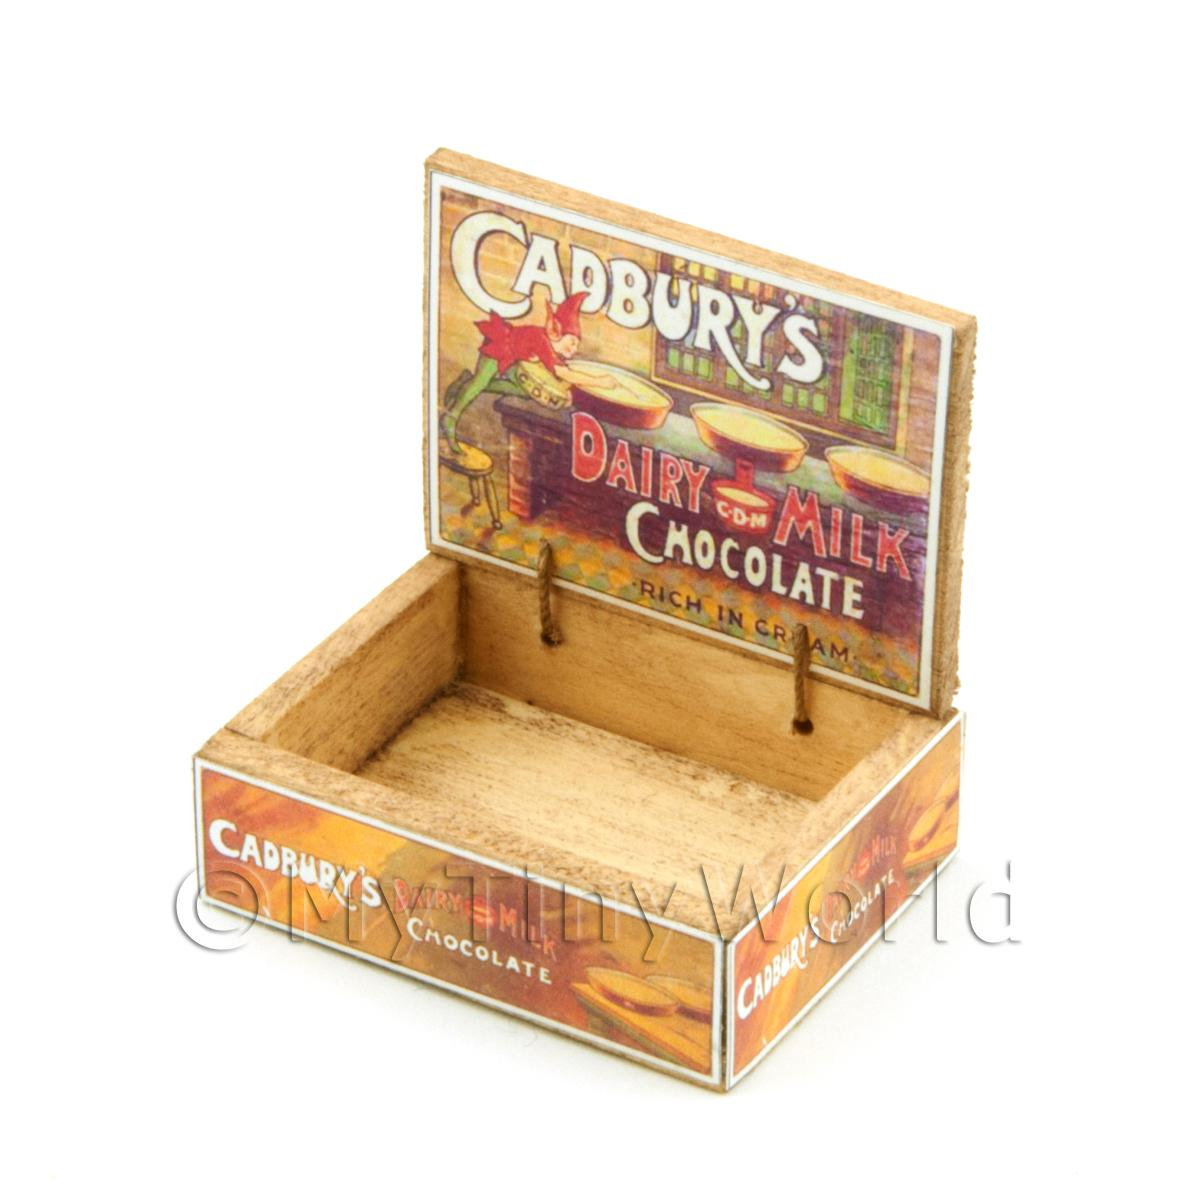 Dolls House Cadburys Chocolate Counter Display Box